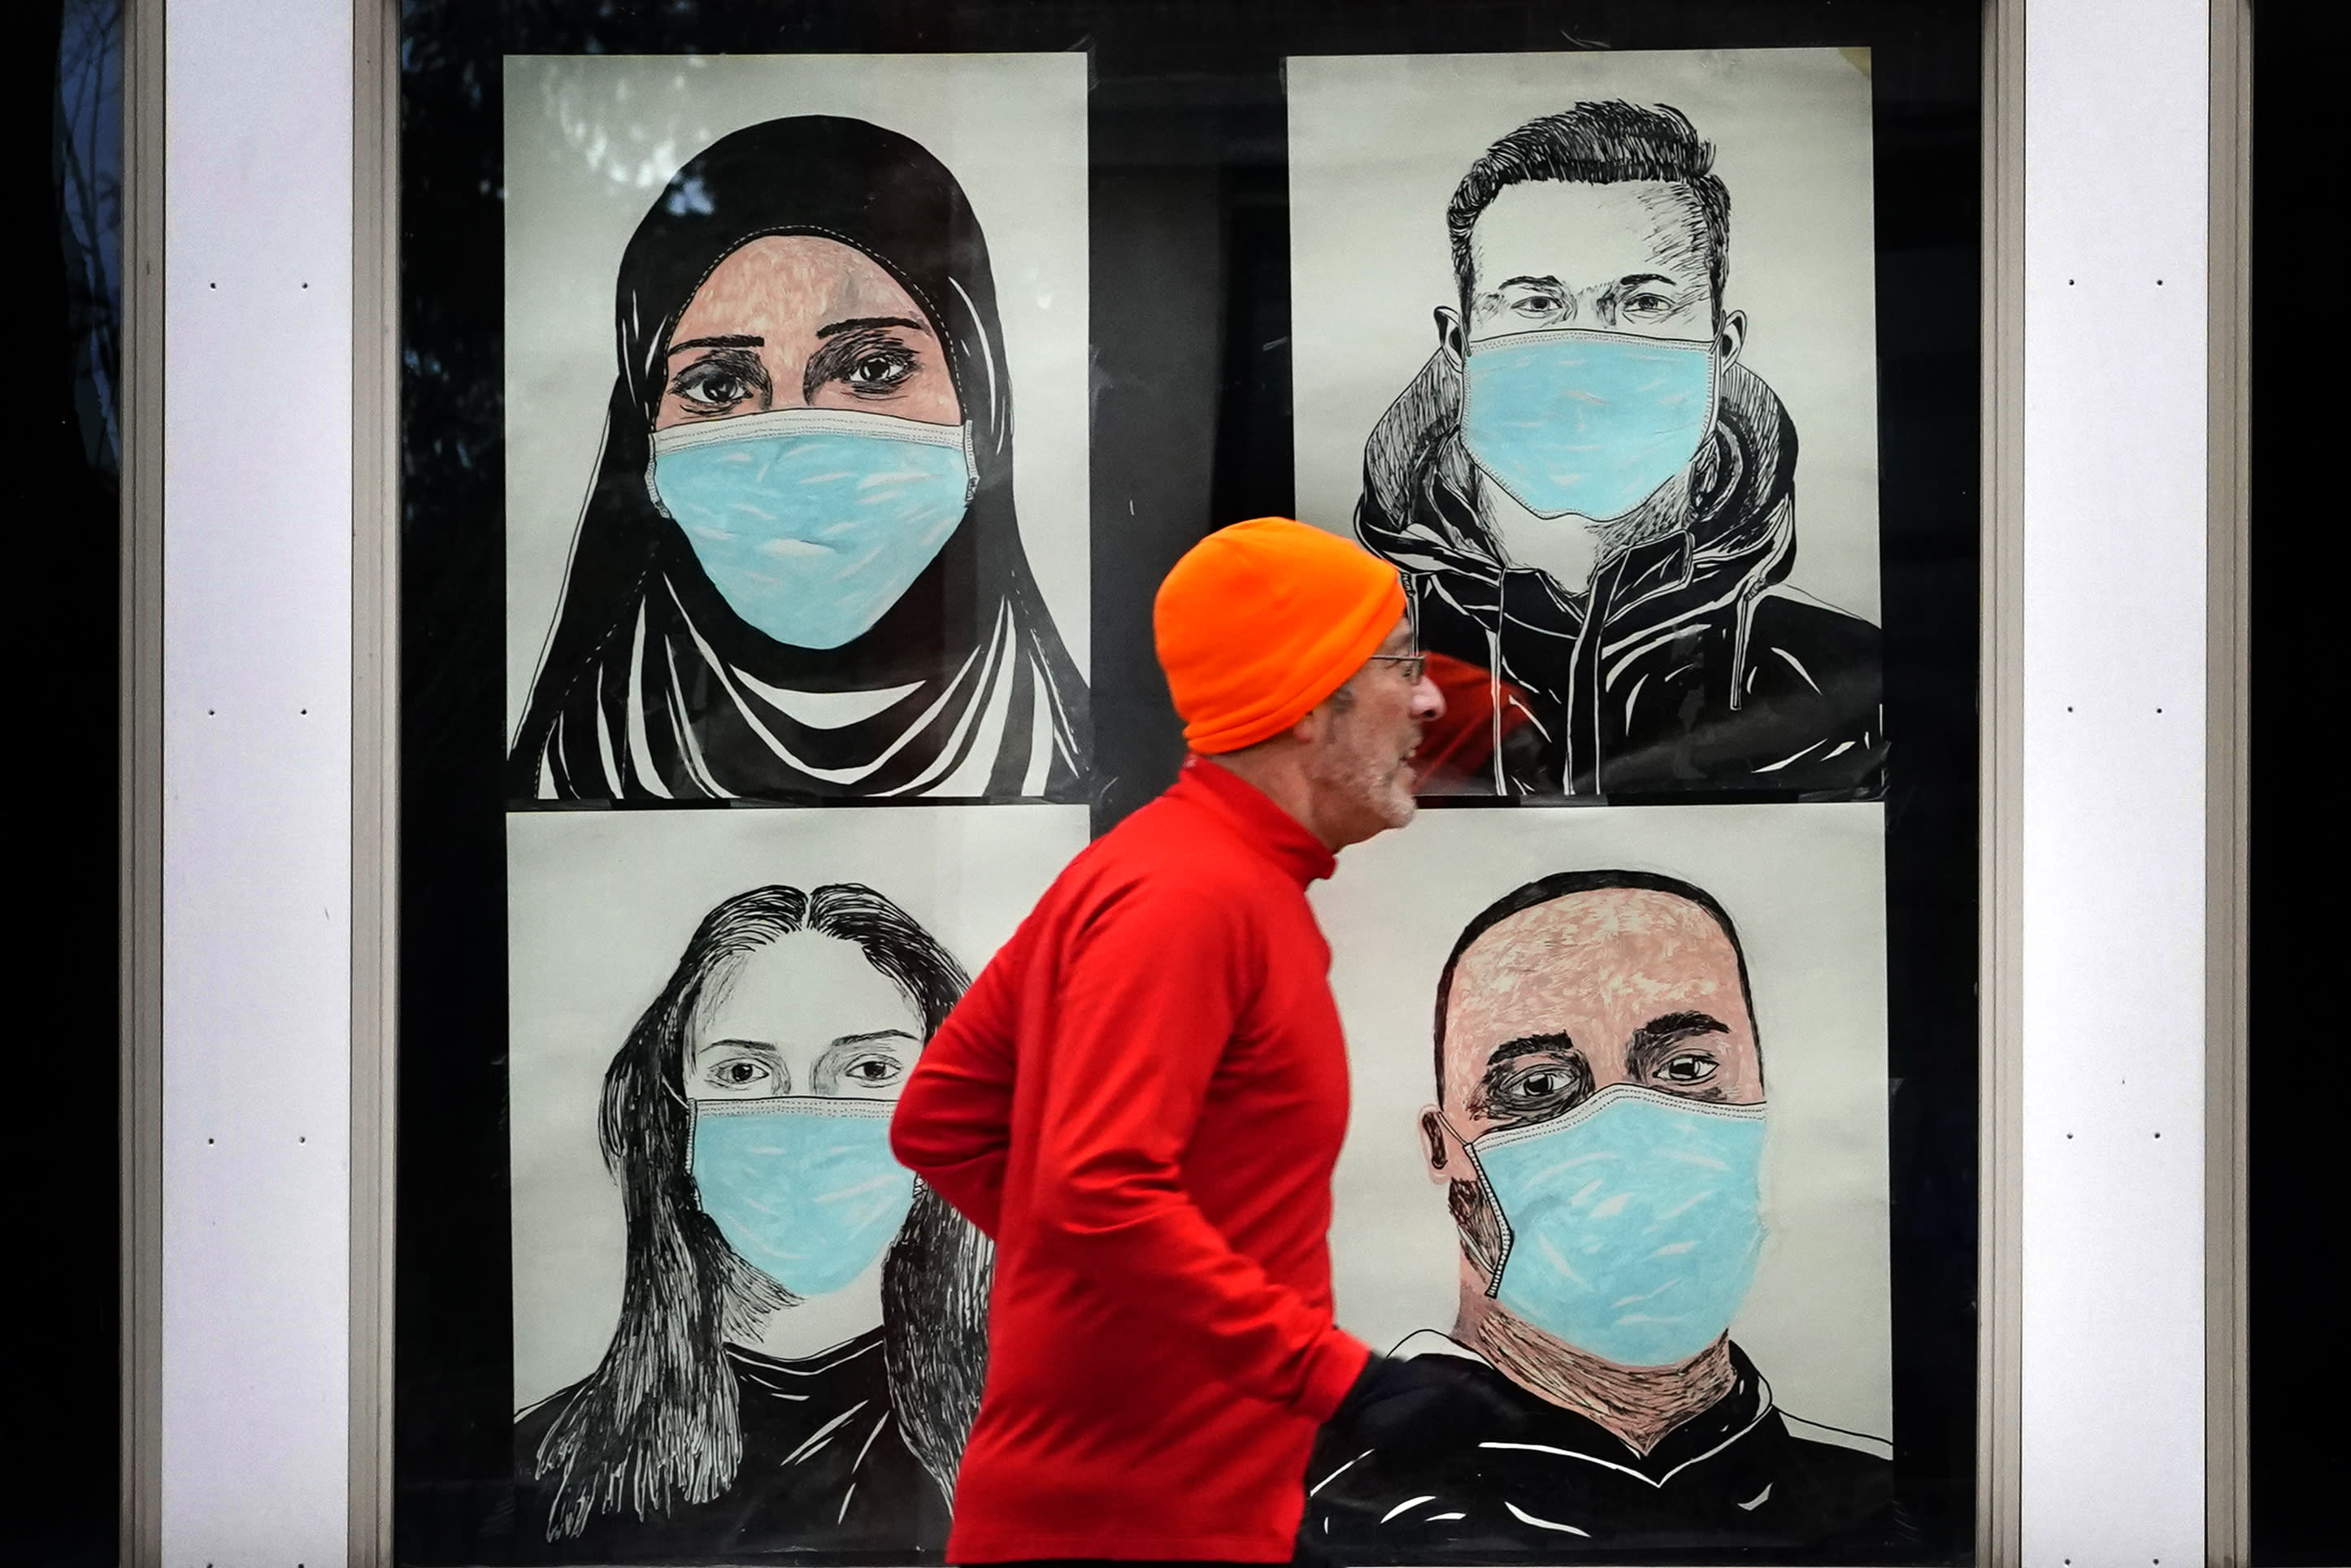 FILE - In this Nov. 16, 2020, file photo, a runner passes by a window displaying portraits of people wearing face coverings to help prevent the spread of the coronavirus in Lewiston, Maine. A deadly rise in COVID-19 infections is forcing state and local officials to adjust their blueprints for fighting a virus that is threatening to overwhelm health care systems. Schools are scrapping plans to reopen classrooms. More states are adopting mask mandates. (AP Photo/Robert F. Bukaty, File)